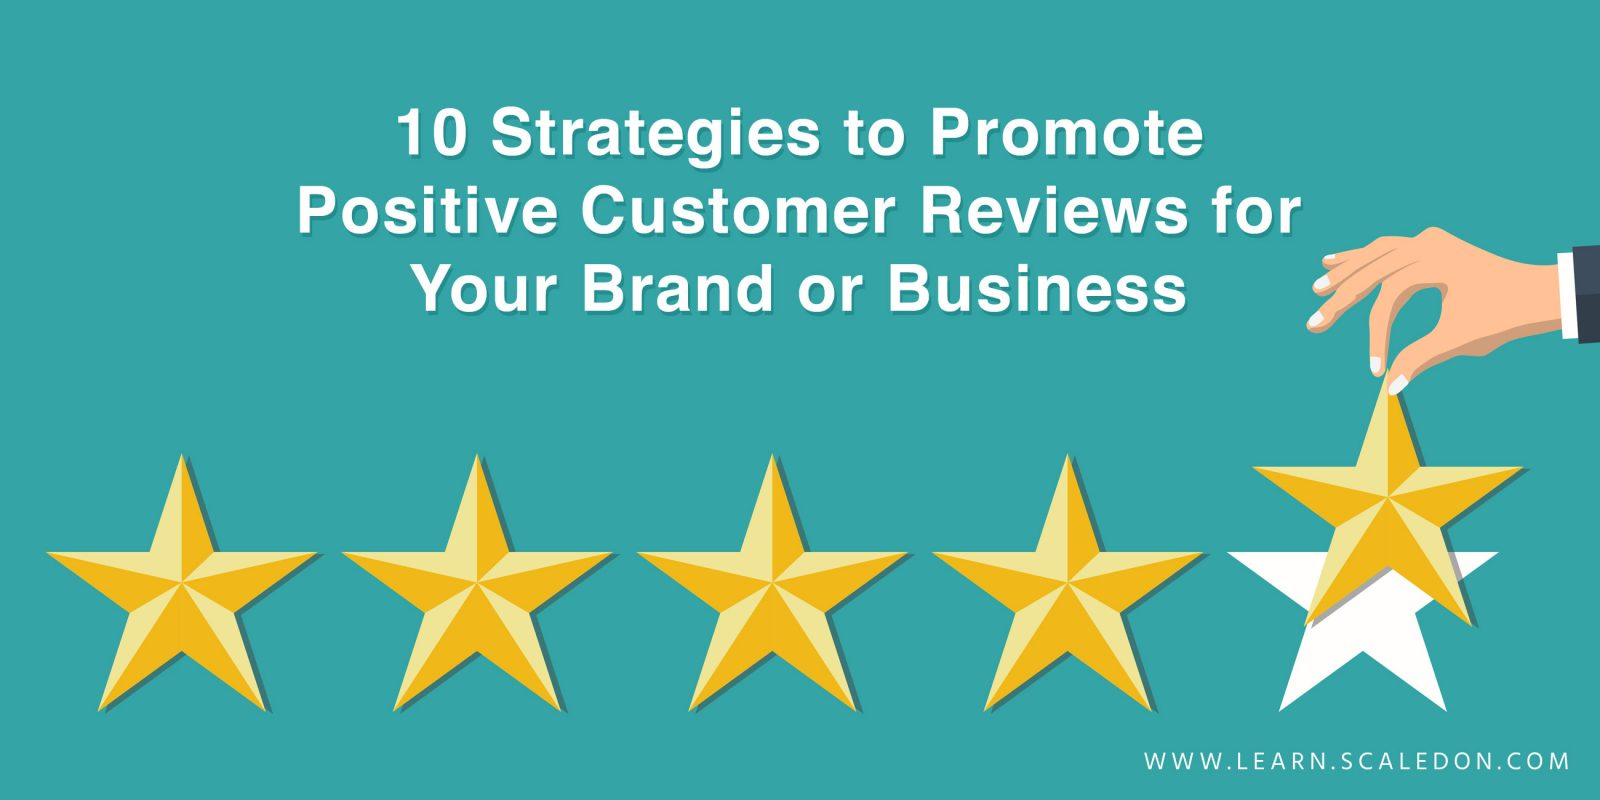 10 Strategies to Promote Positive Customer Reviews for Your Brand or Business